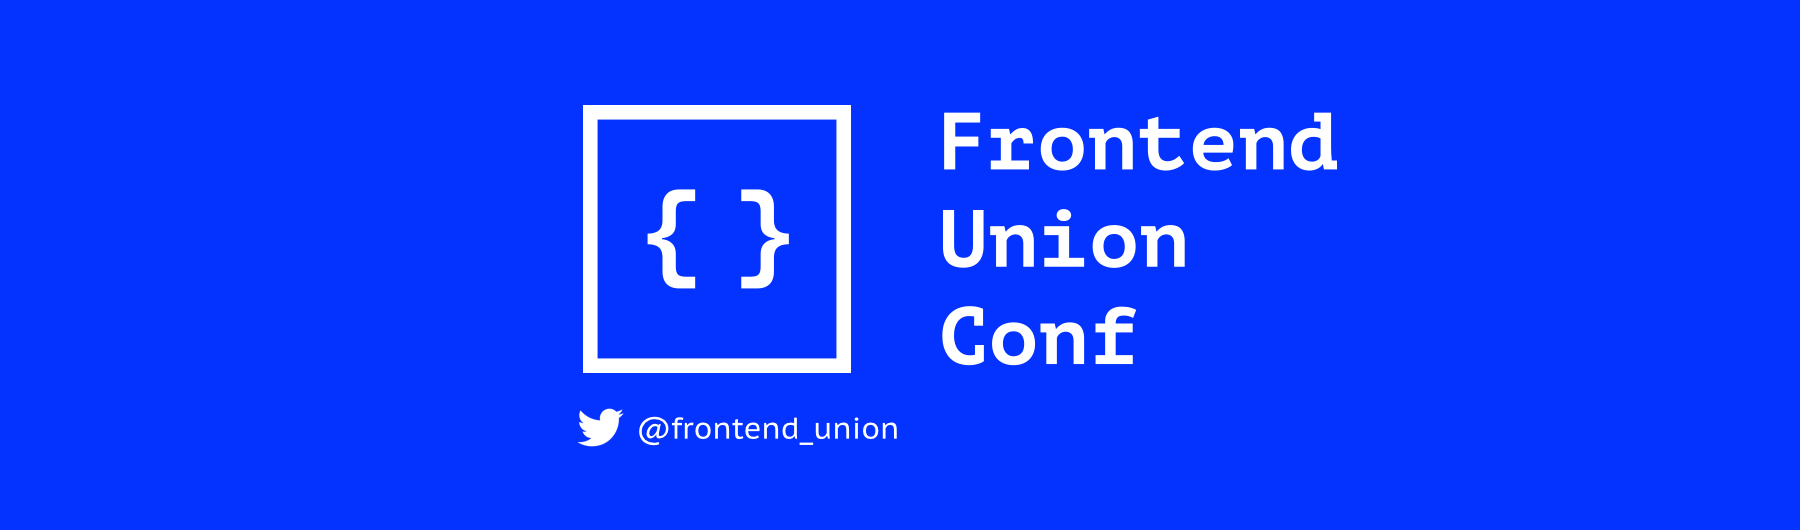 Frontend Union Conf 2016